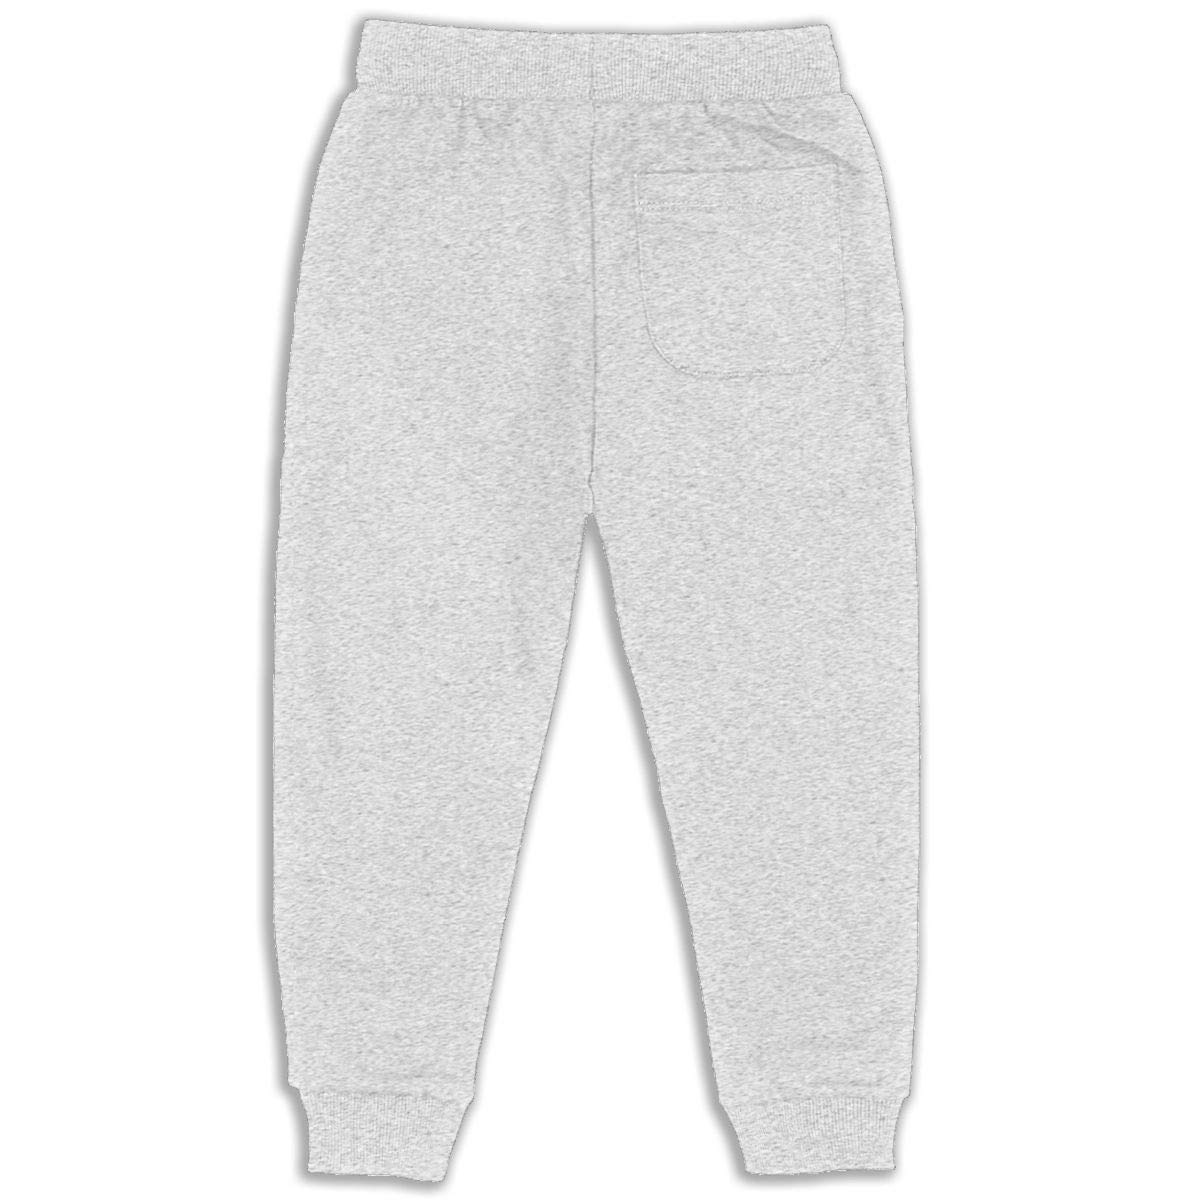 Laoyaotequ Deadmau5 Kids Cotton Sweatpants,Jogger Long Jersey Sweatpants